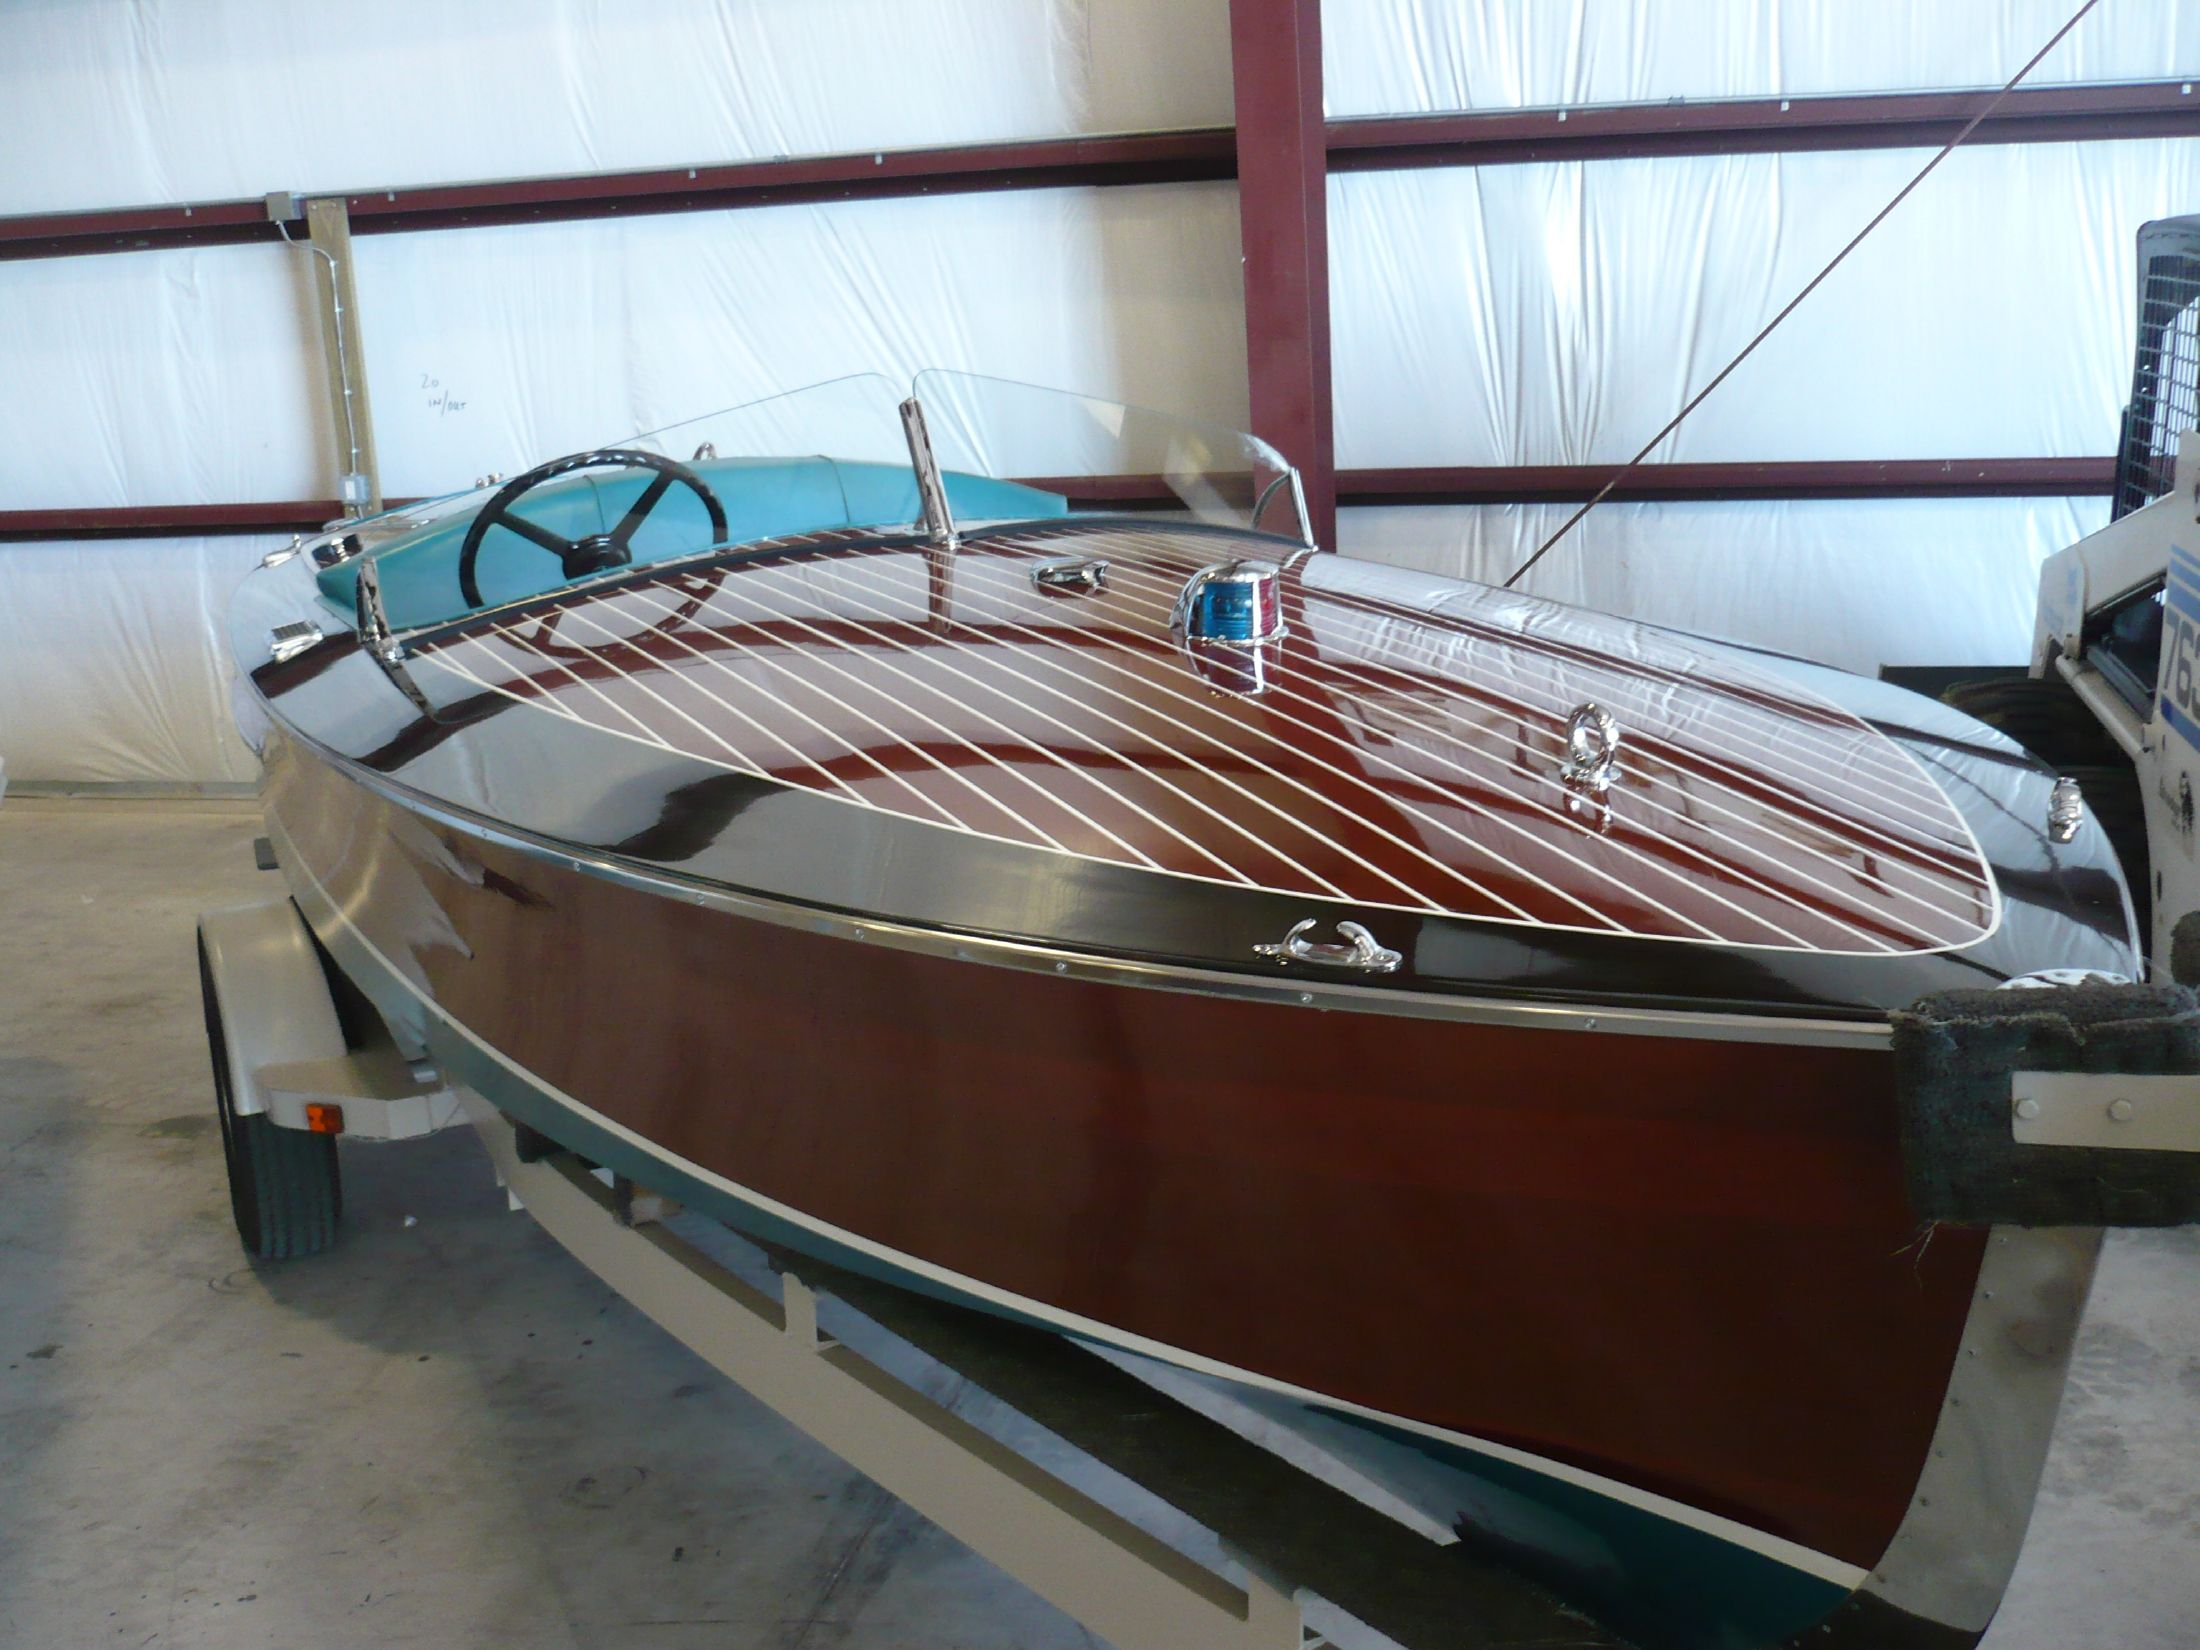 19 ft 2000 vintage marine racer (chris craft runabout replica)